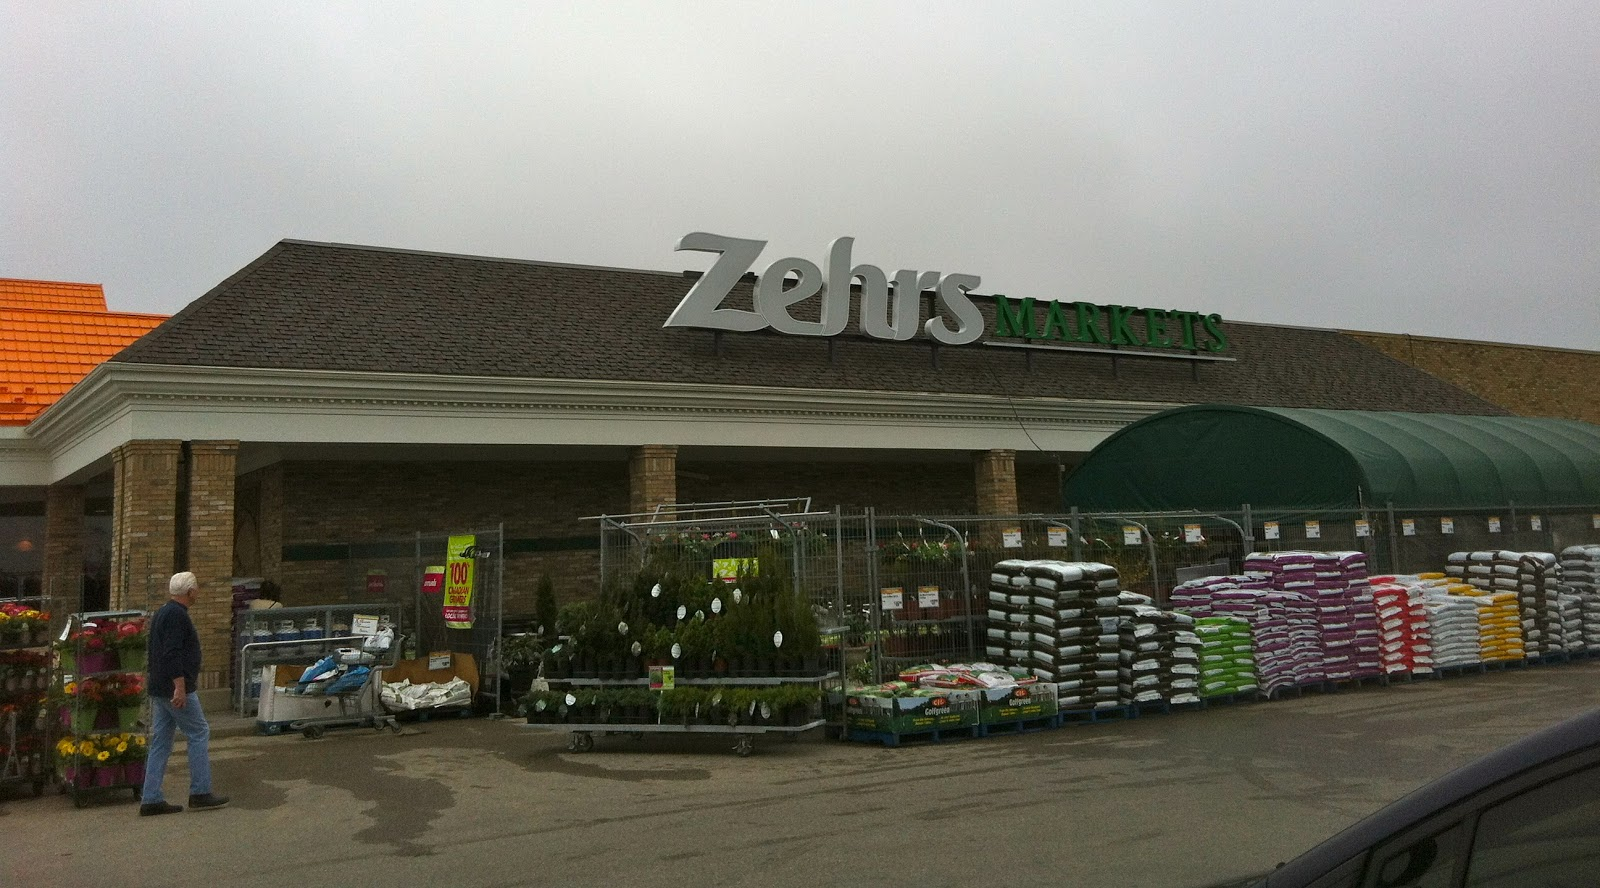 zehrs market Local florist in kitchener, on canada that provides top quality custom flower arrangements for weddings, events, sympathy, anniversary and everyday flowers in.